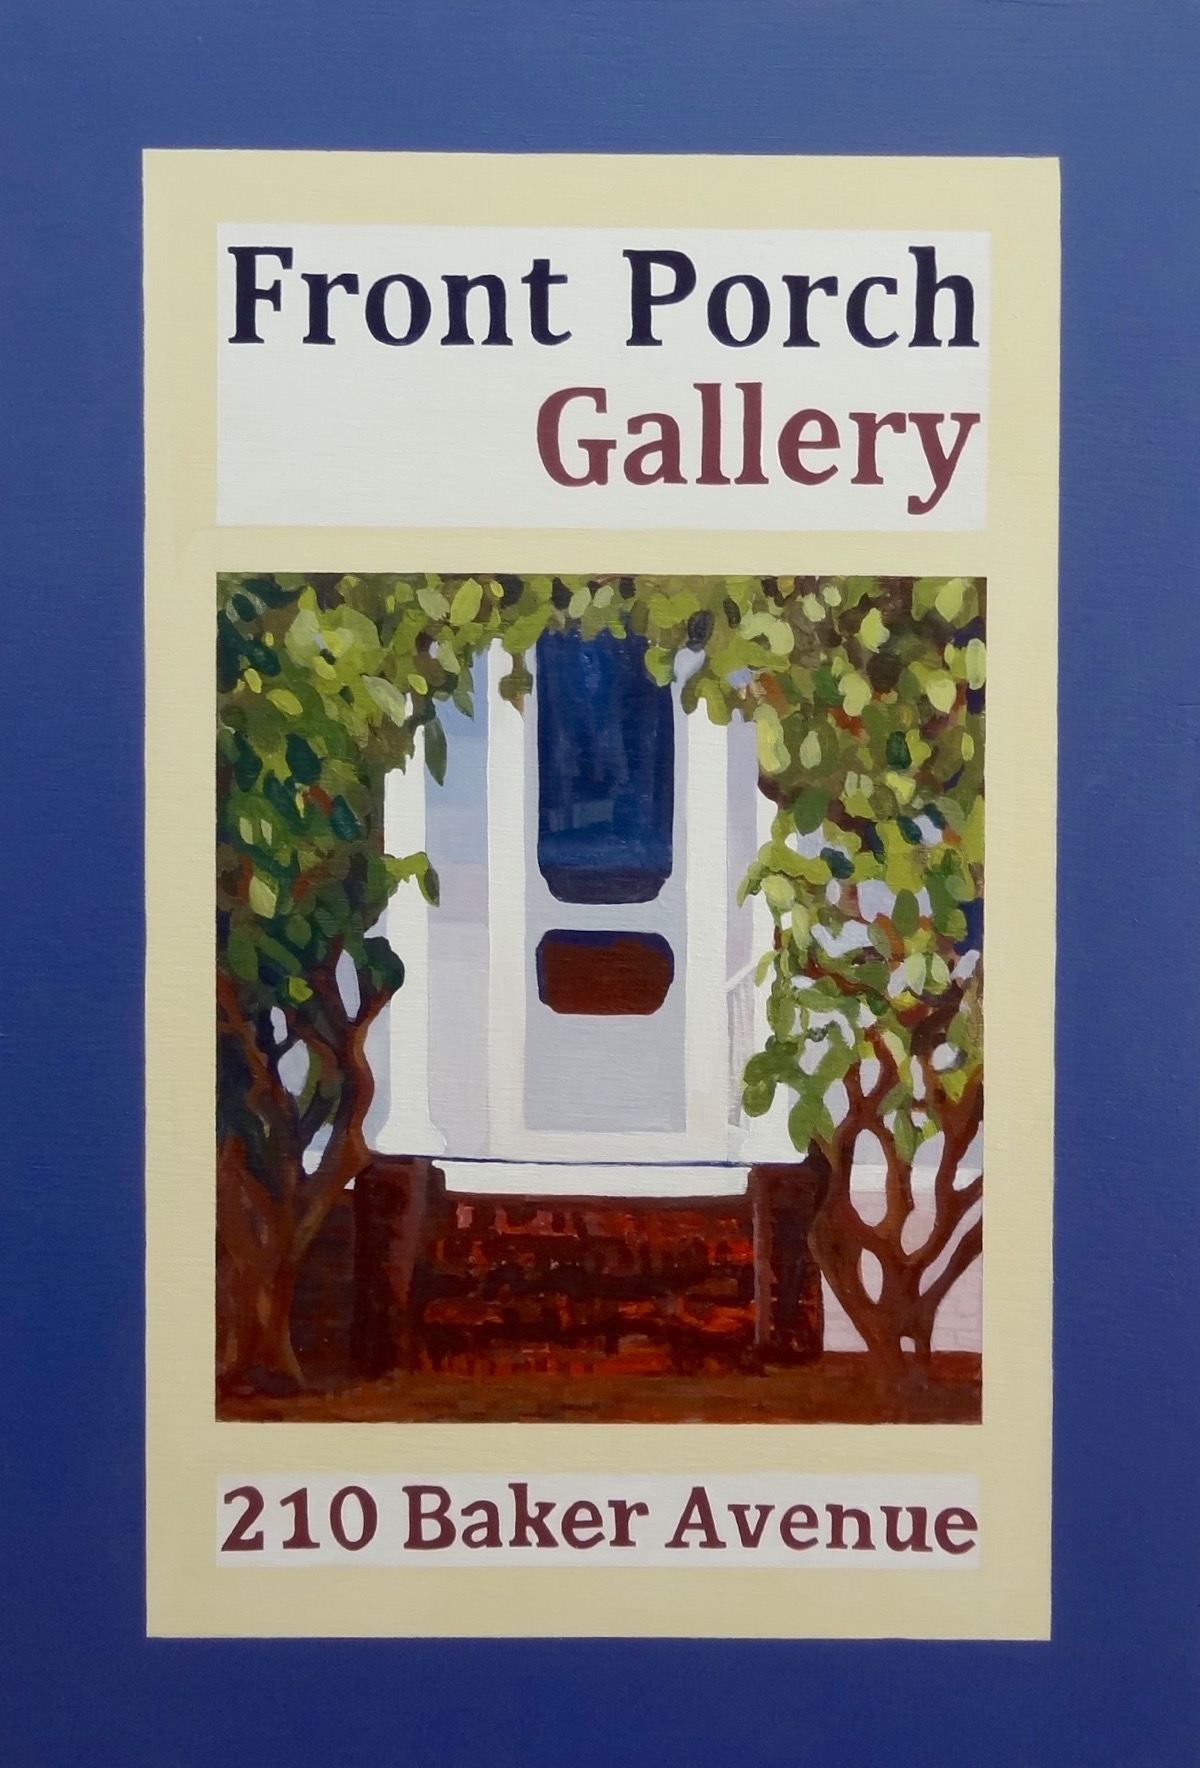 Front Porch Gallery